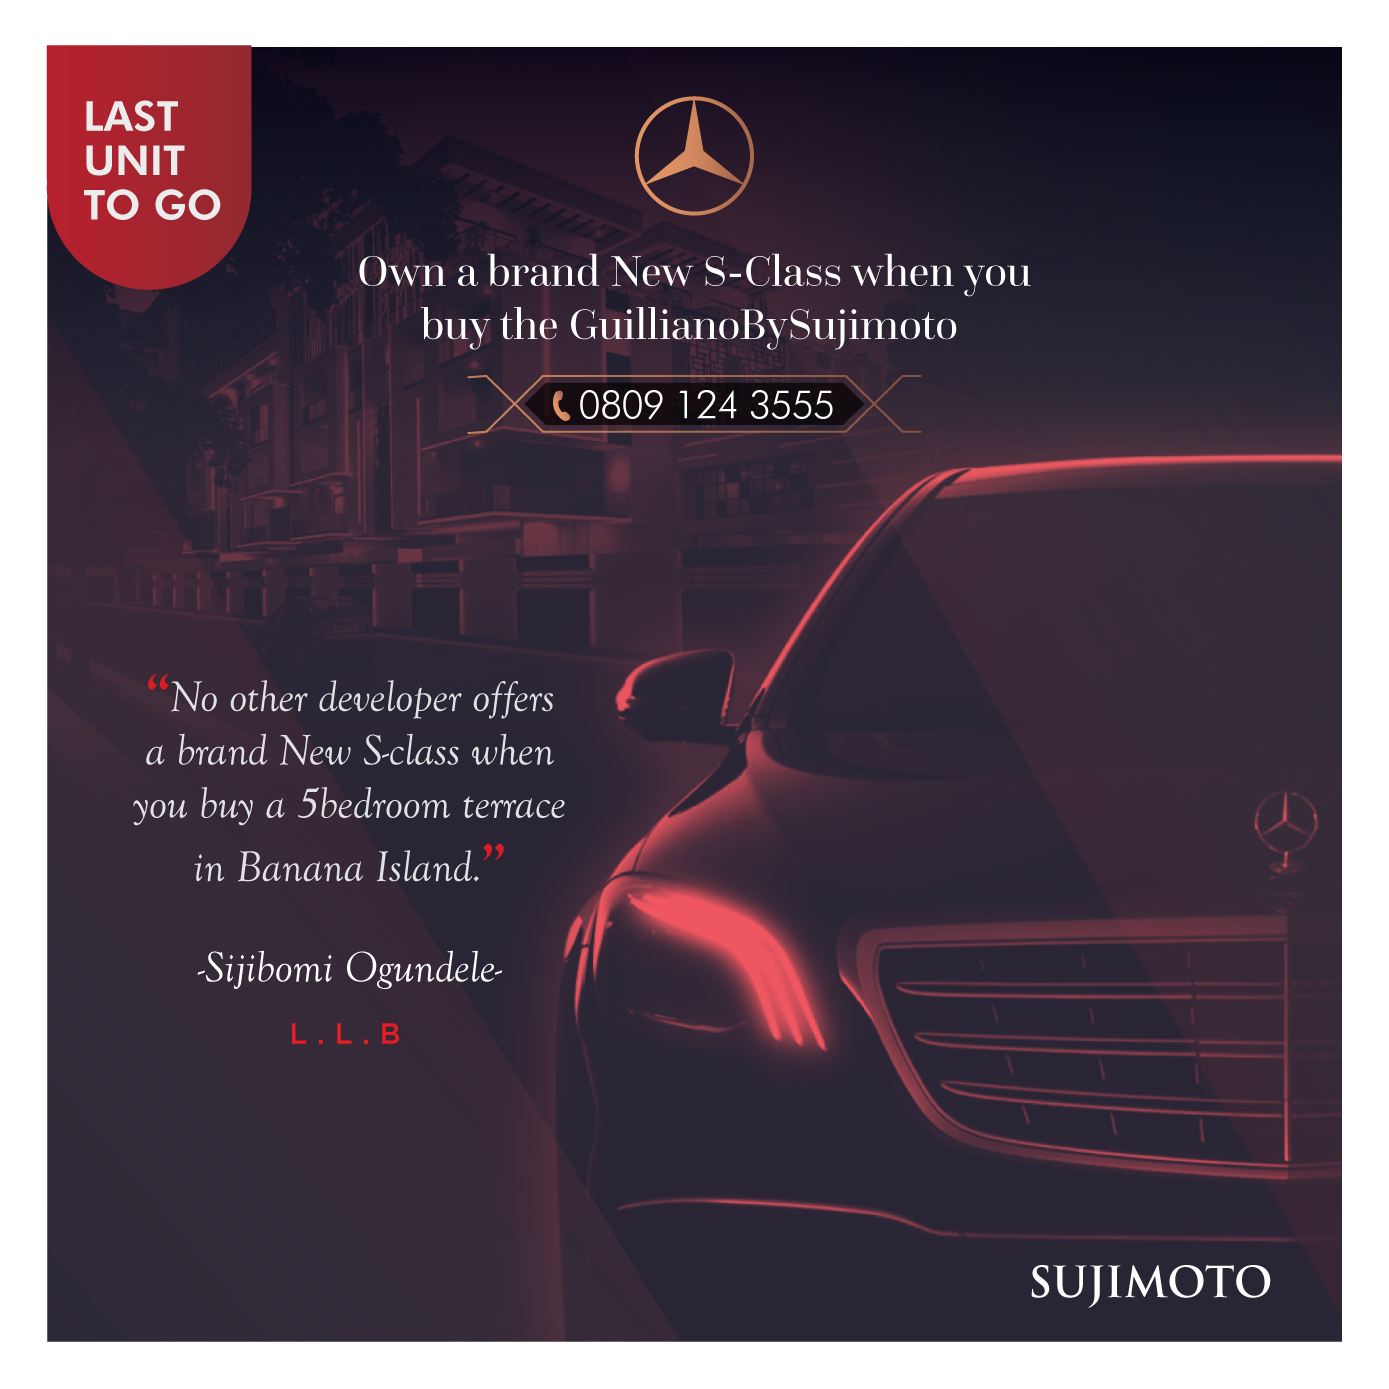 Own a Brand New S-Class when you buy the GiulianoBySujimoto (Pictures)